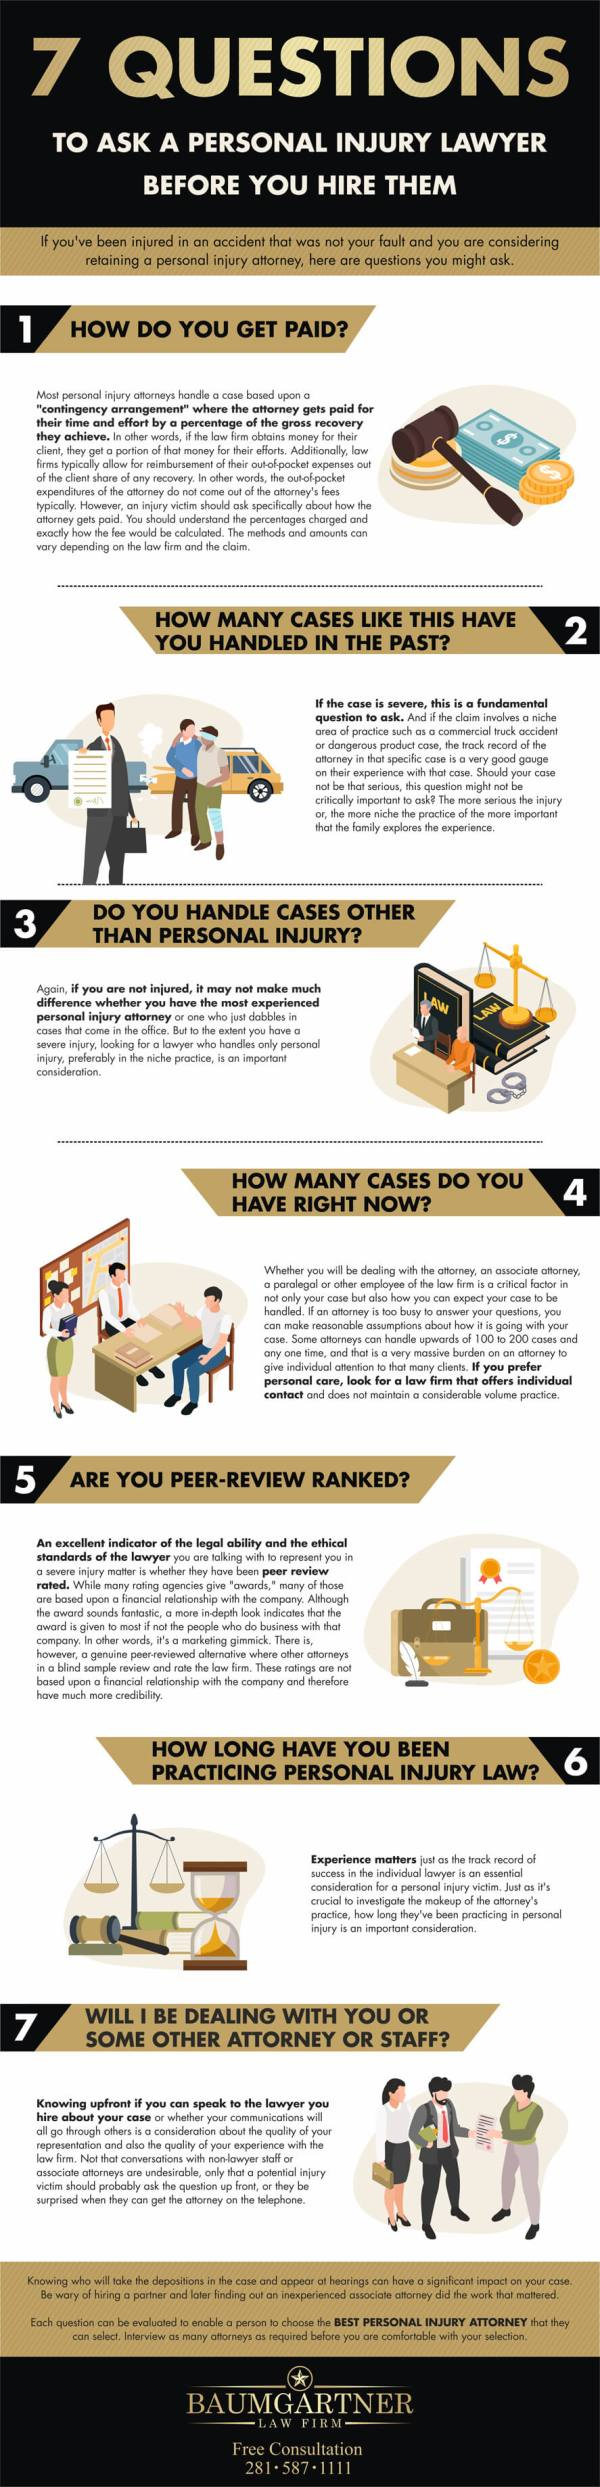 7-questions-before-hiring-lawyer-infographic